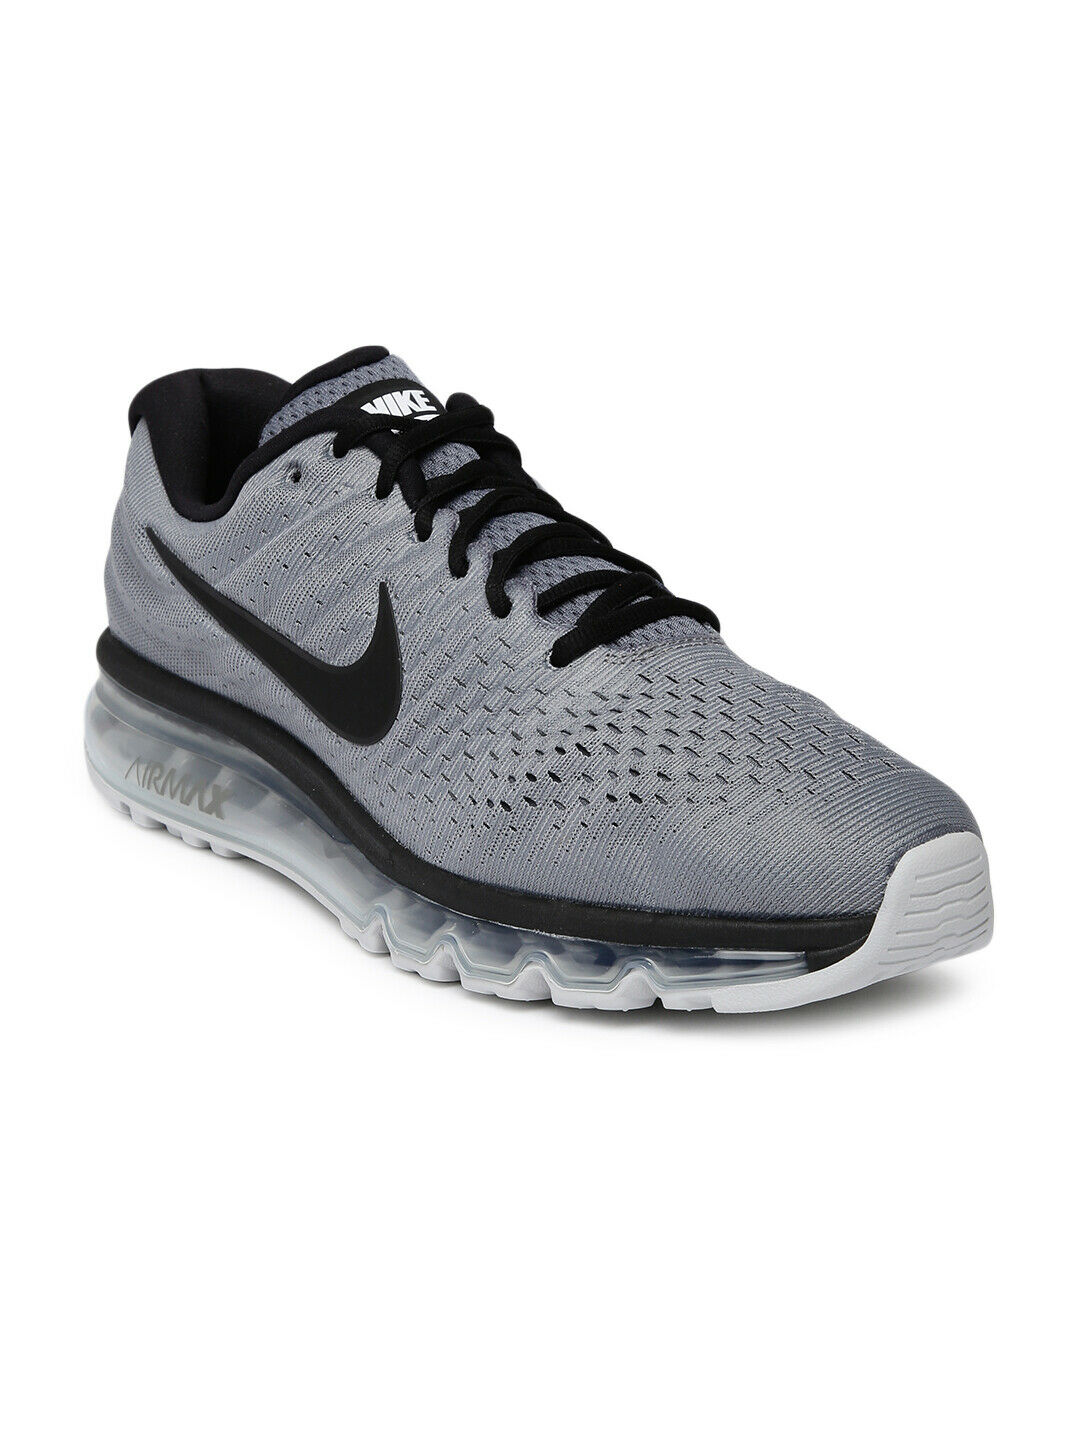 NEW IN BOX NIKE AIR MAX 2017 TRAINERS JUST DO IT SHOES SNEAKERS MEN 2017